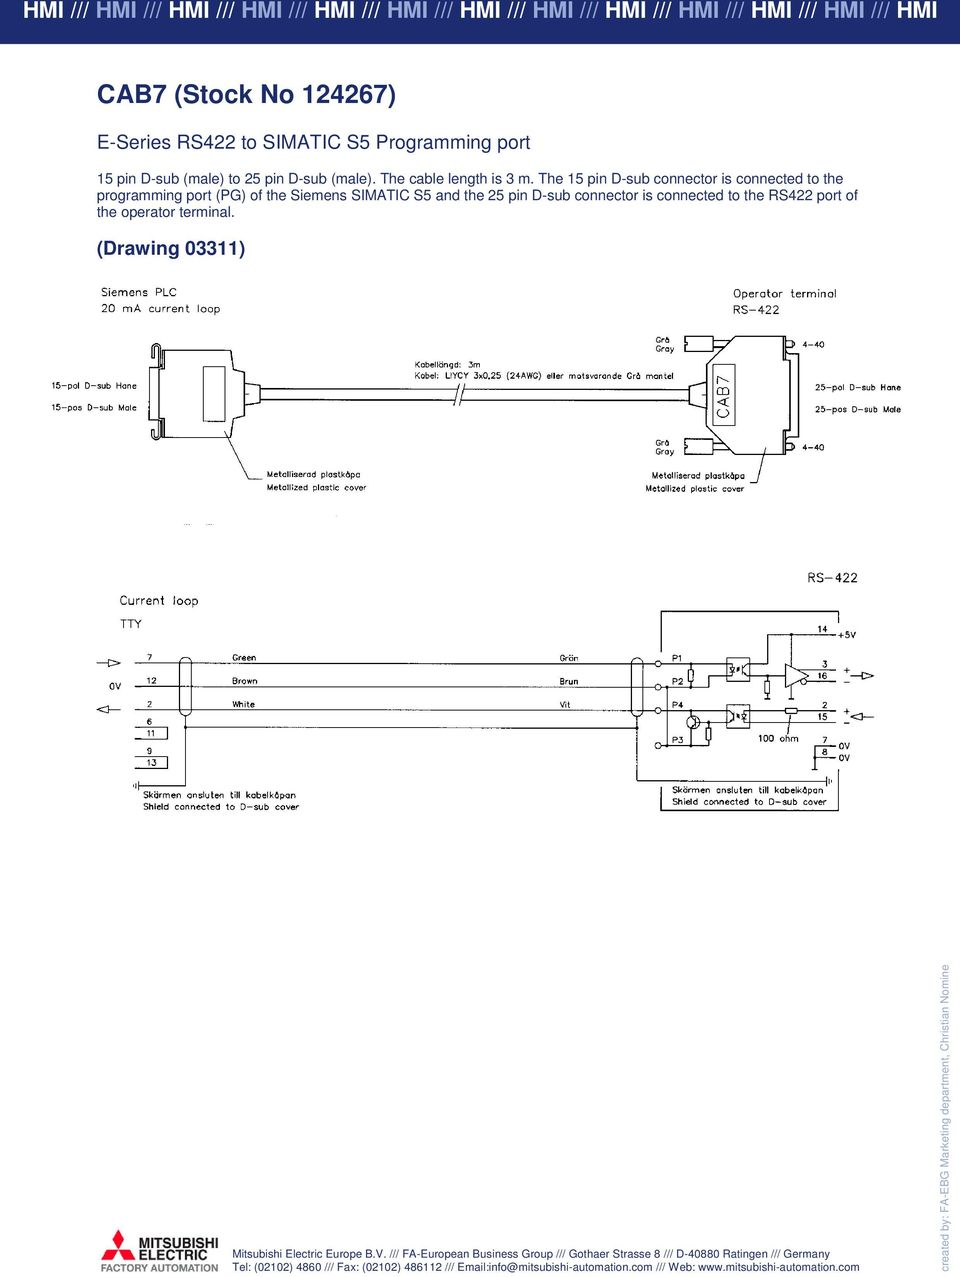 E Series E1000 Cable Guide Pdf Pinout Fabrication Diagrams The 15 Pin D Sub Connector Is Connected To Programming Port Pg